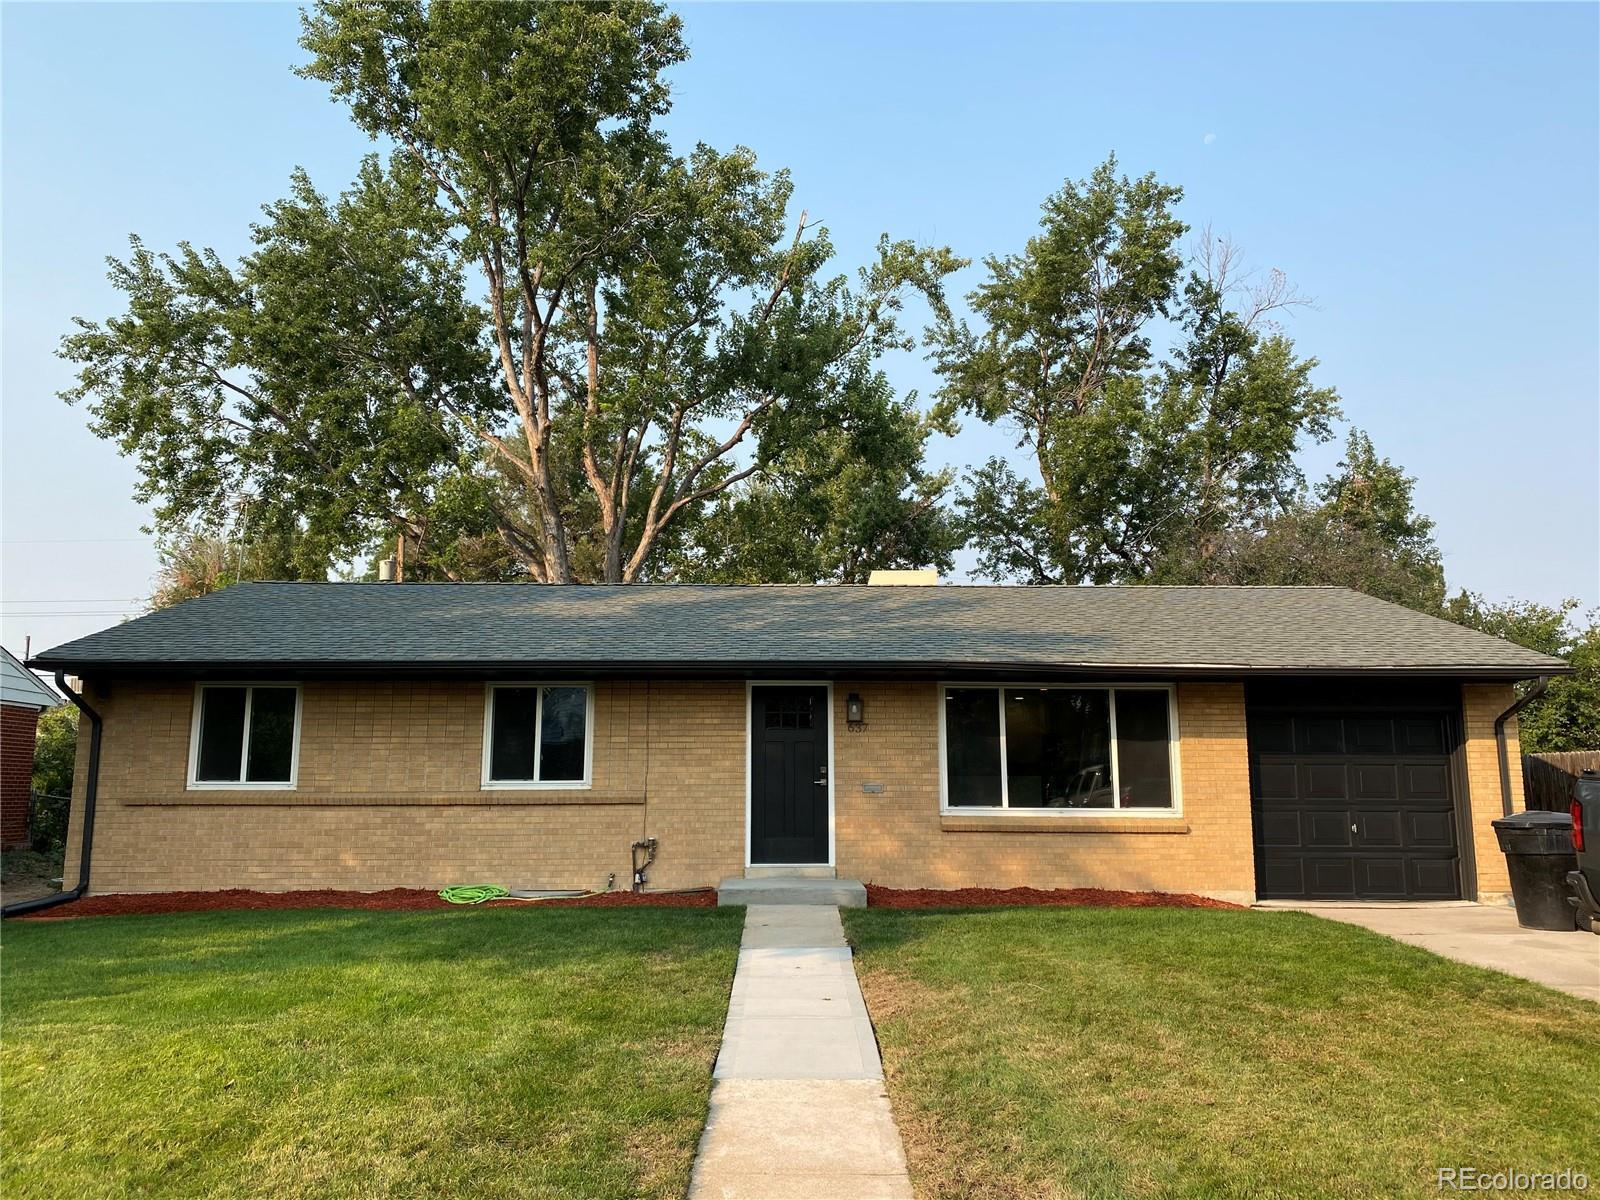 637 S Grape Street, Denver, CO 80246 - #: 3519196